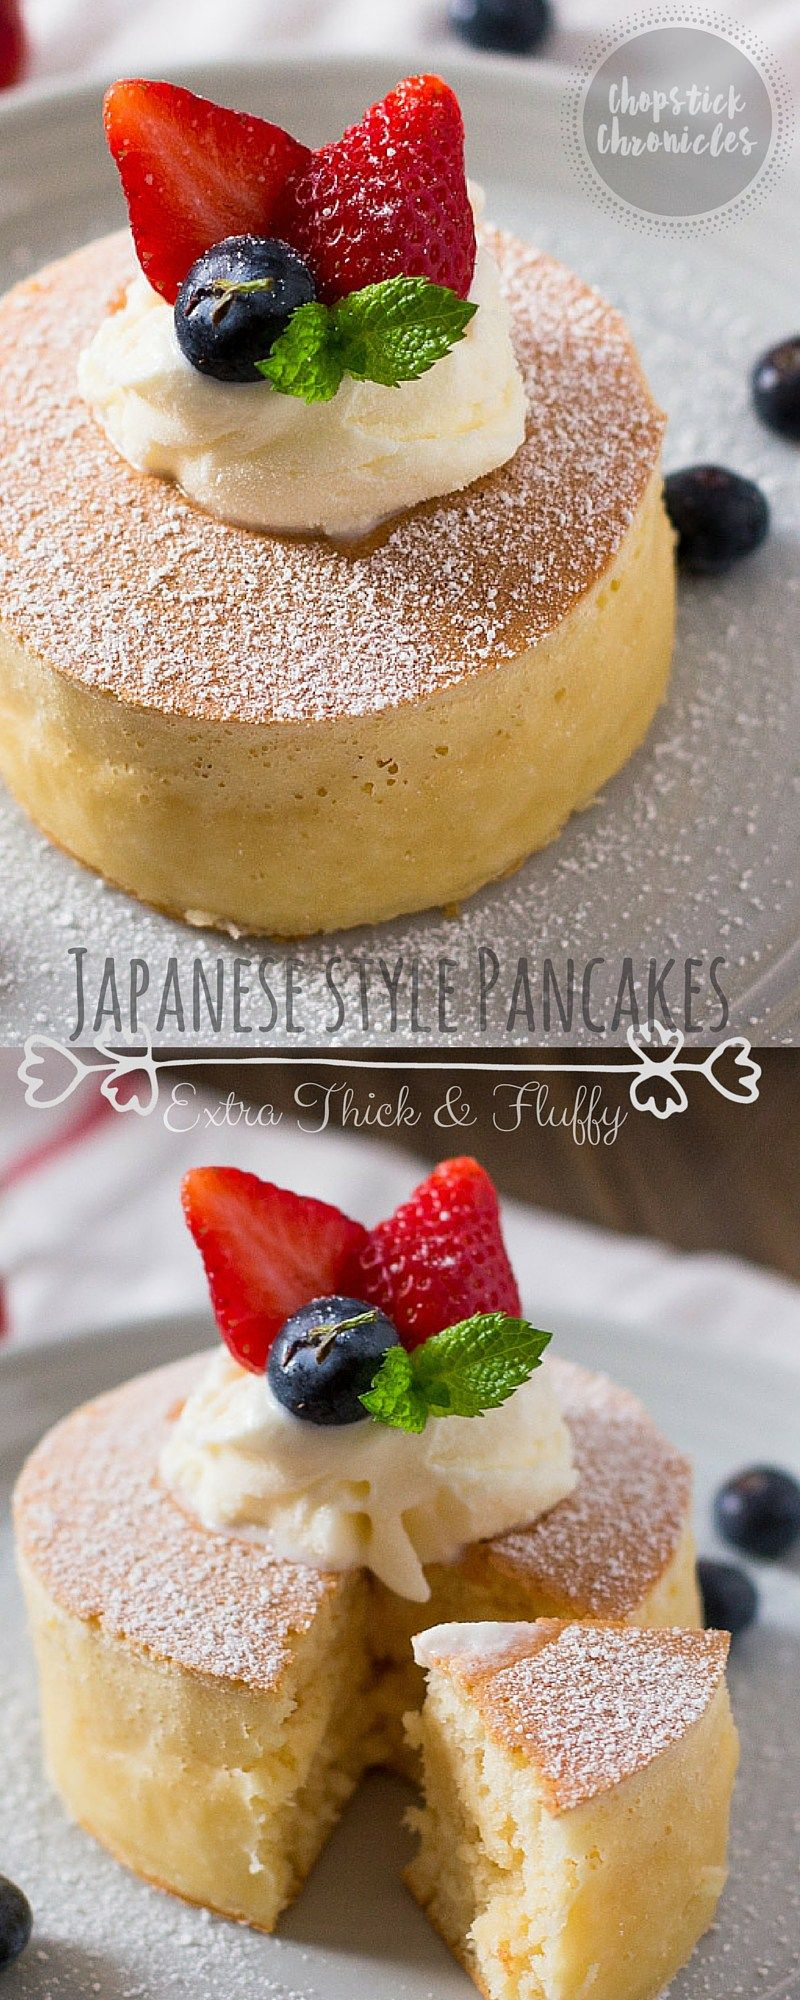 Extra Thick And Fluffy Japanese Pancakes Recipe Dessert Recipes Food Desserts